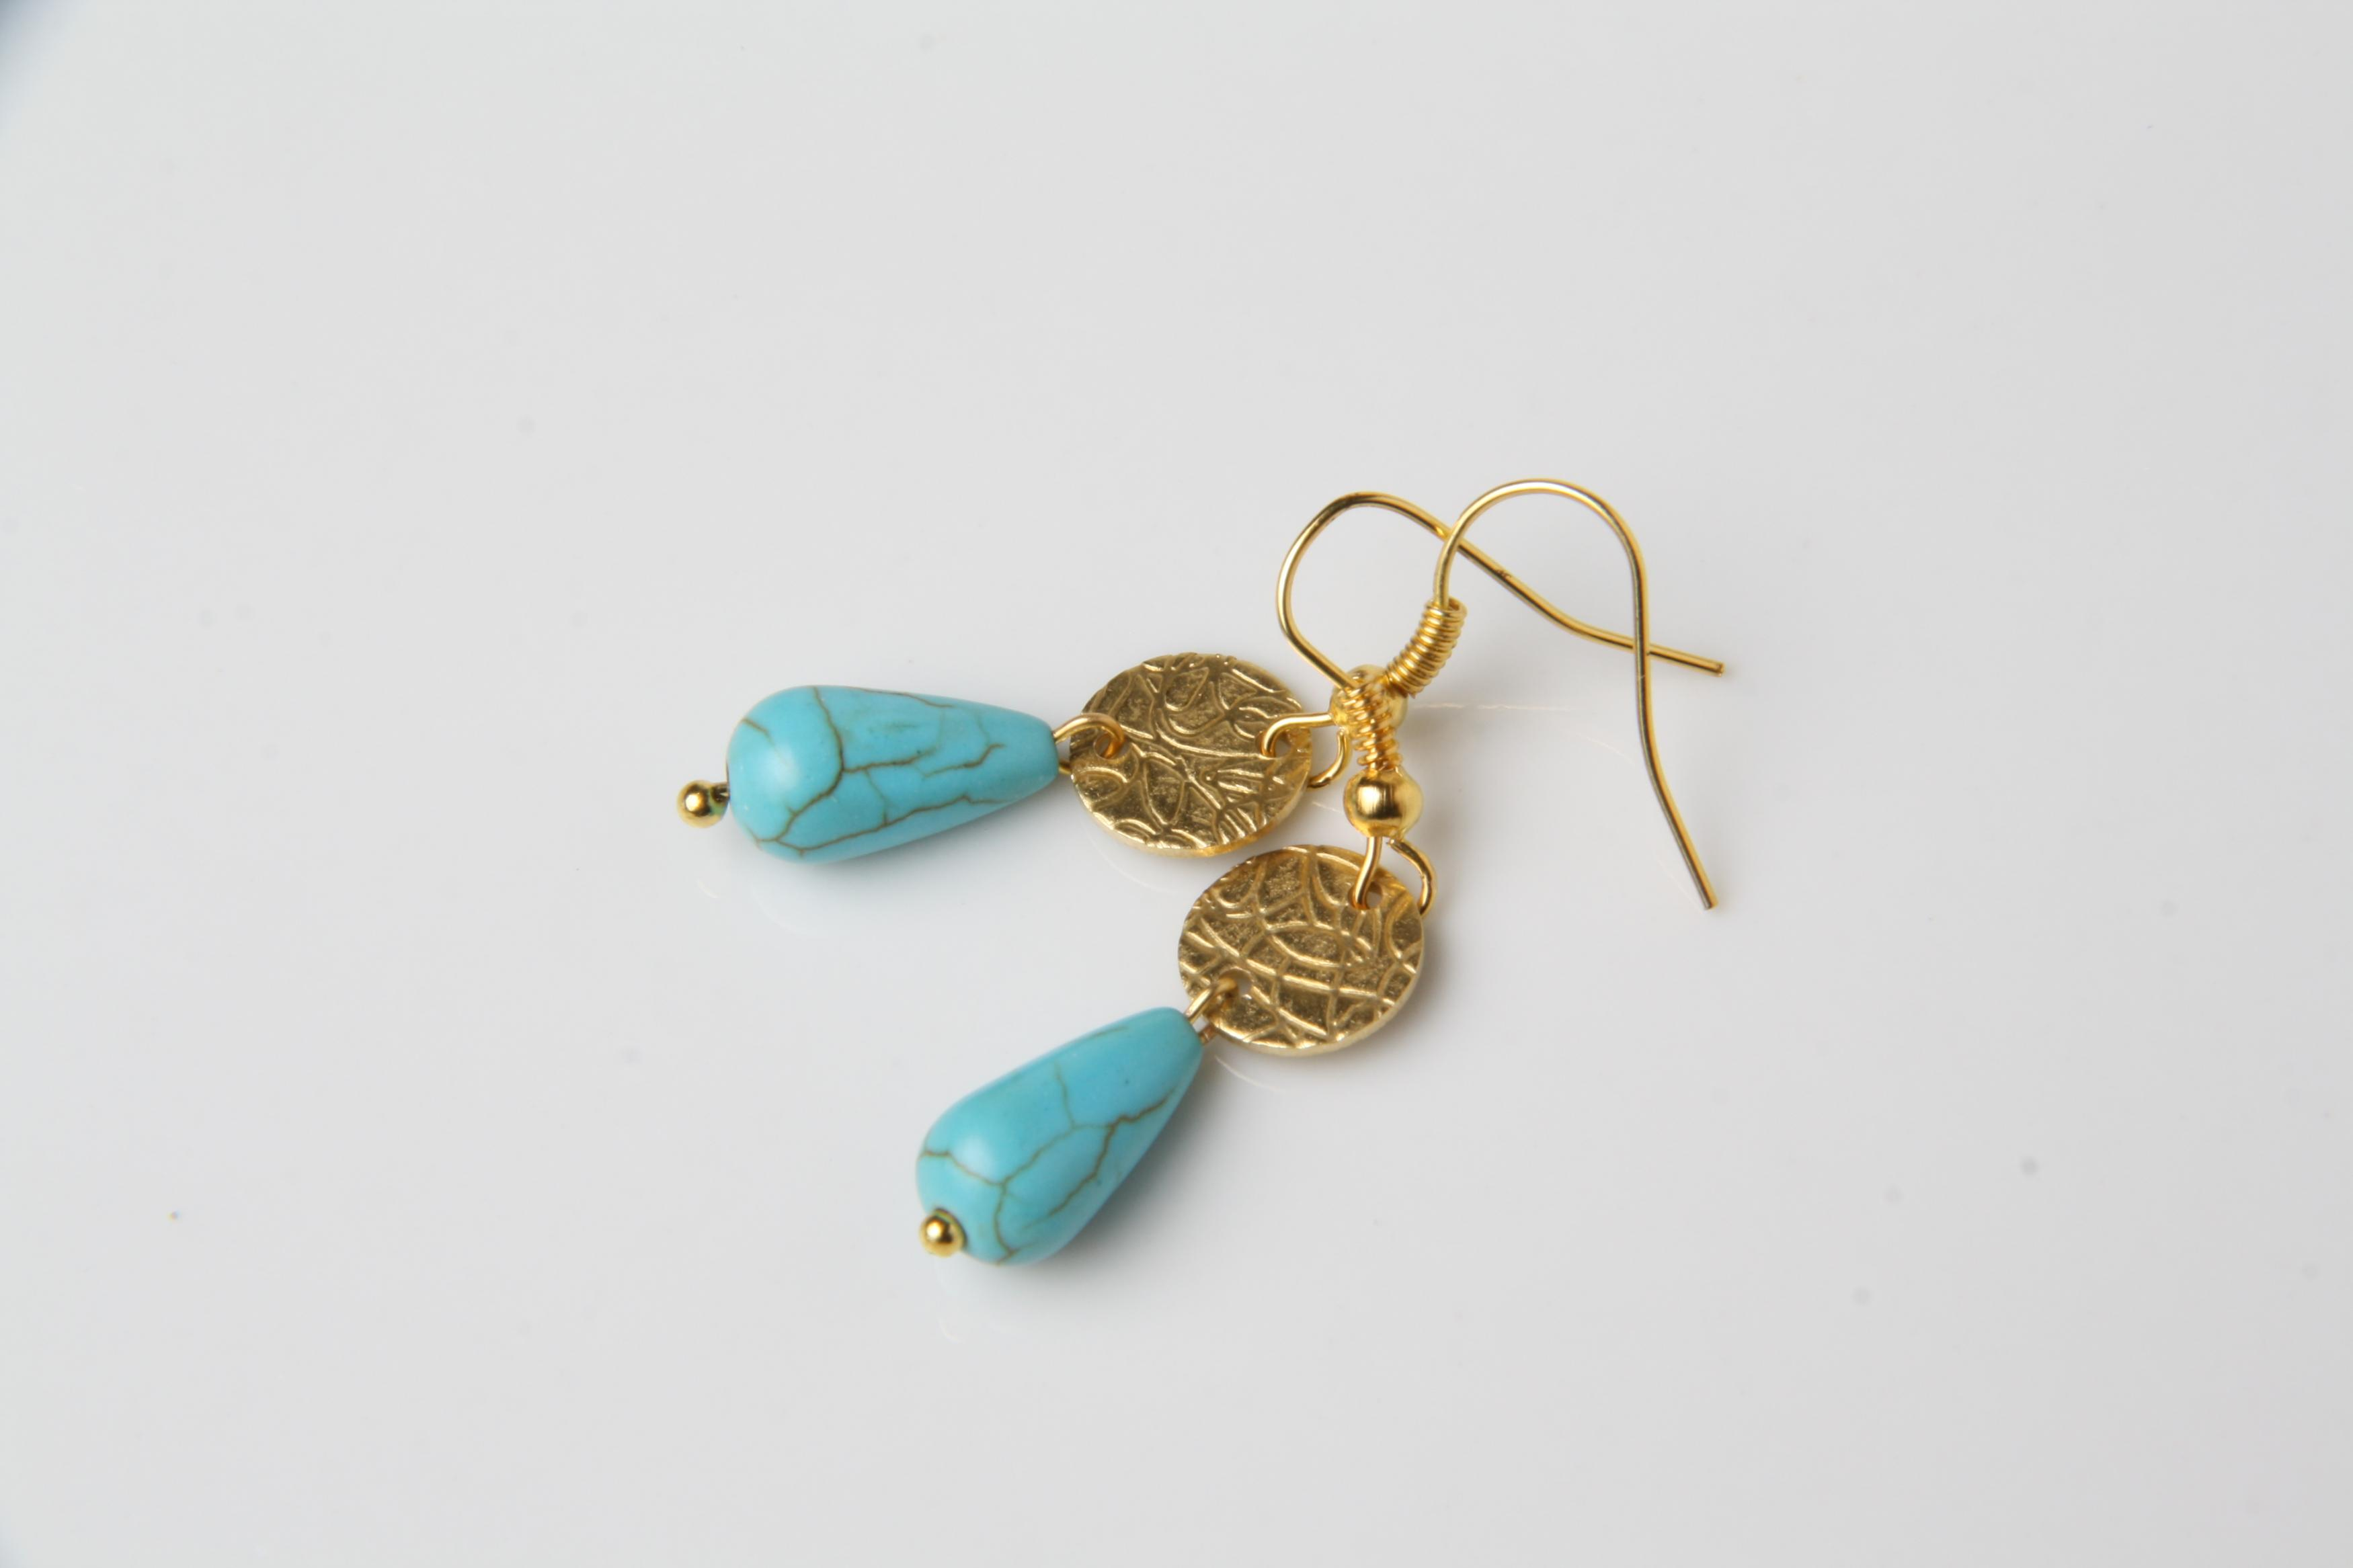 Dainty Turquoise Earrings Delicate Drop Jewelry And Gold Made In Canada Gypsy Gift